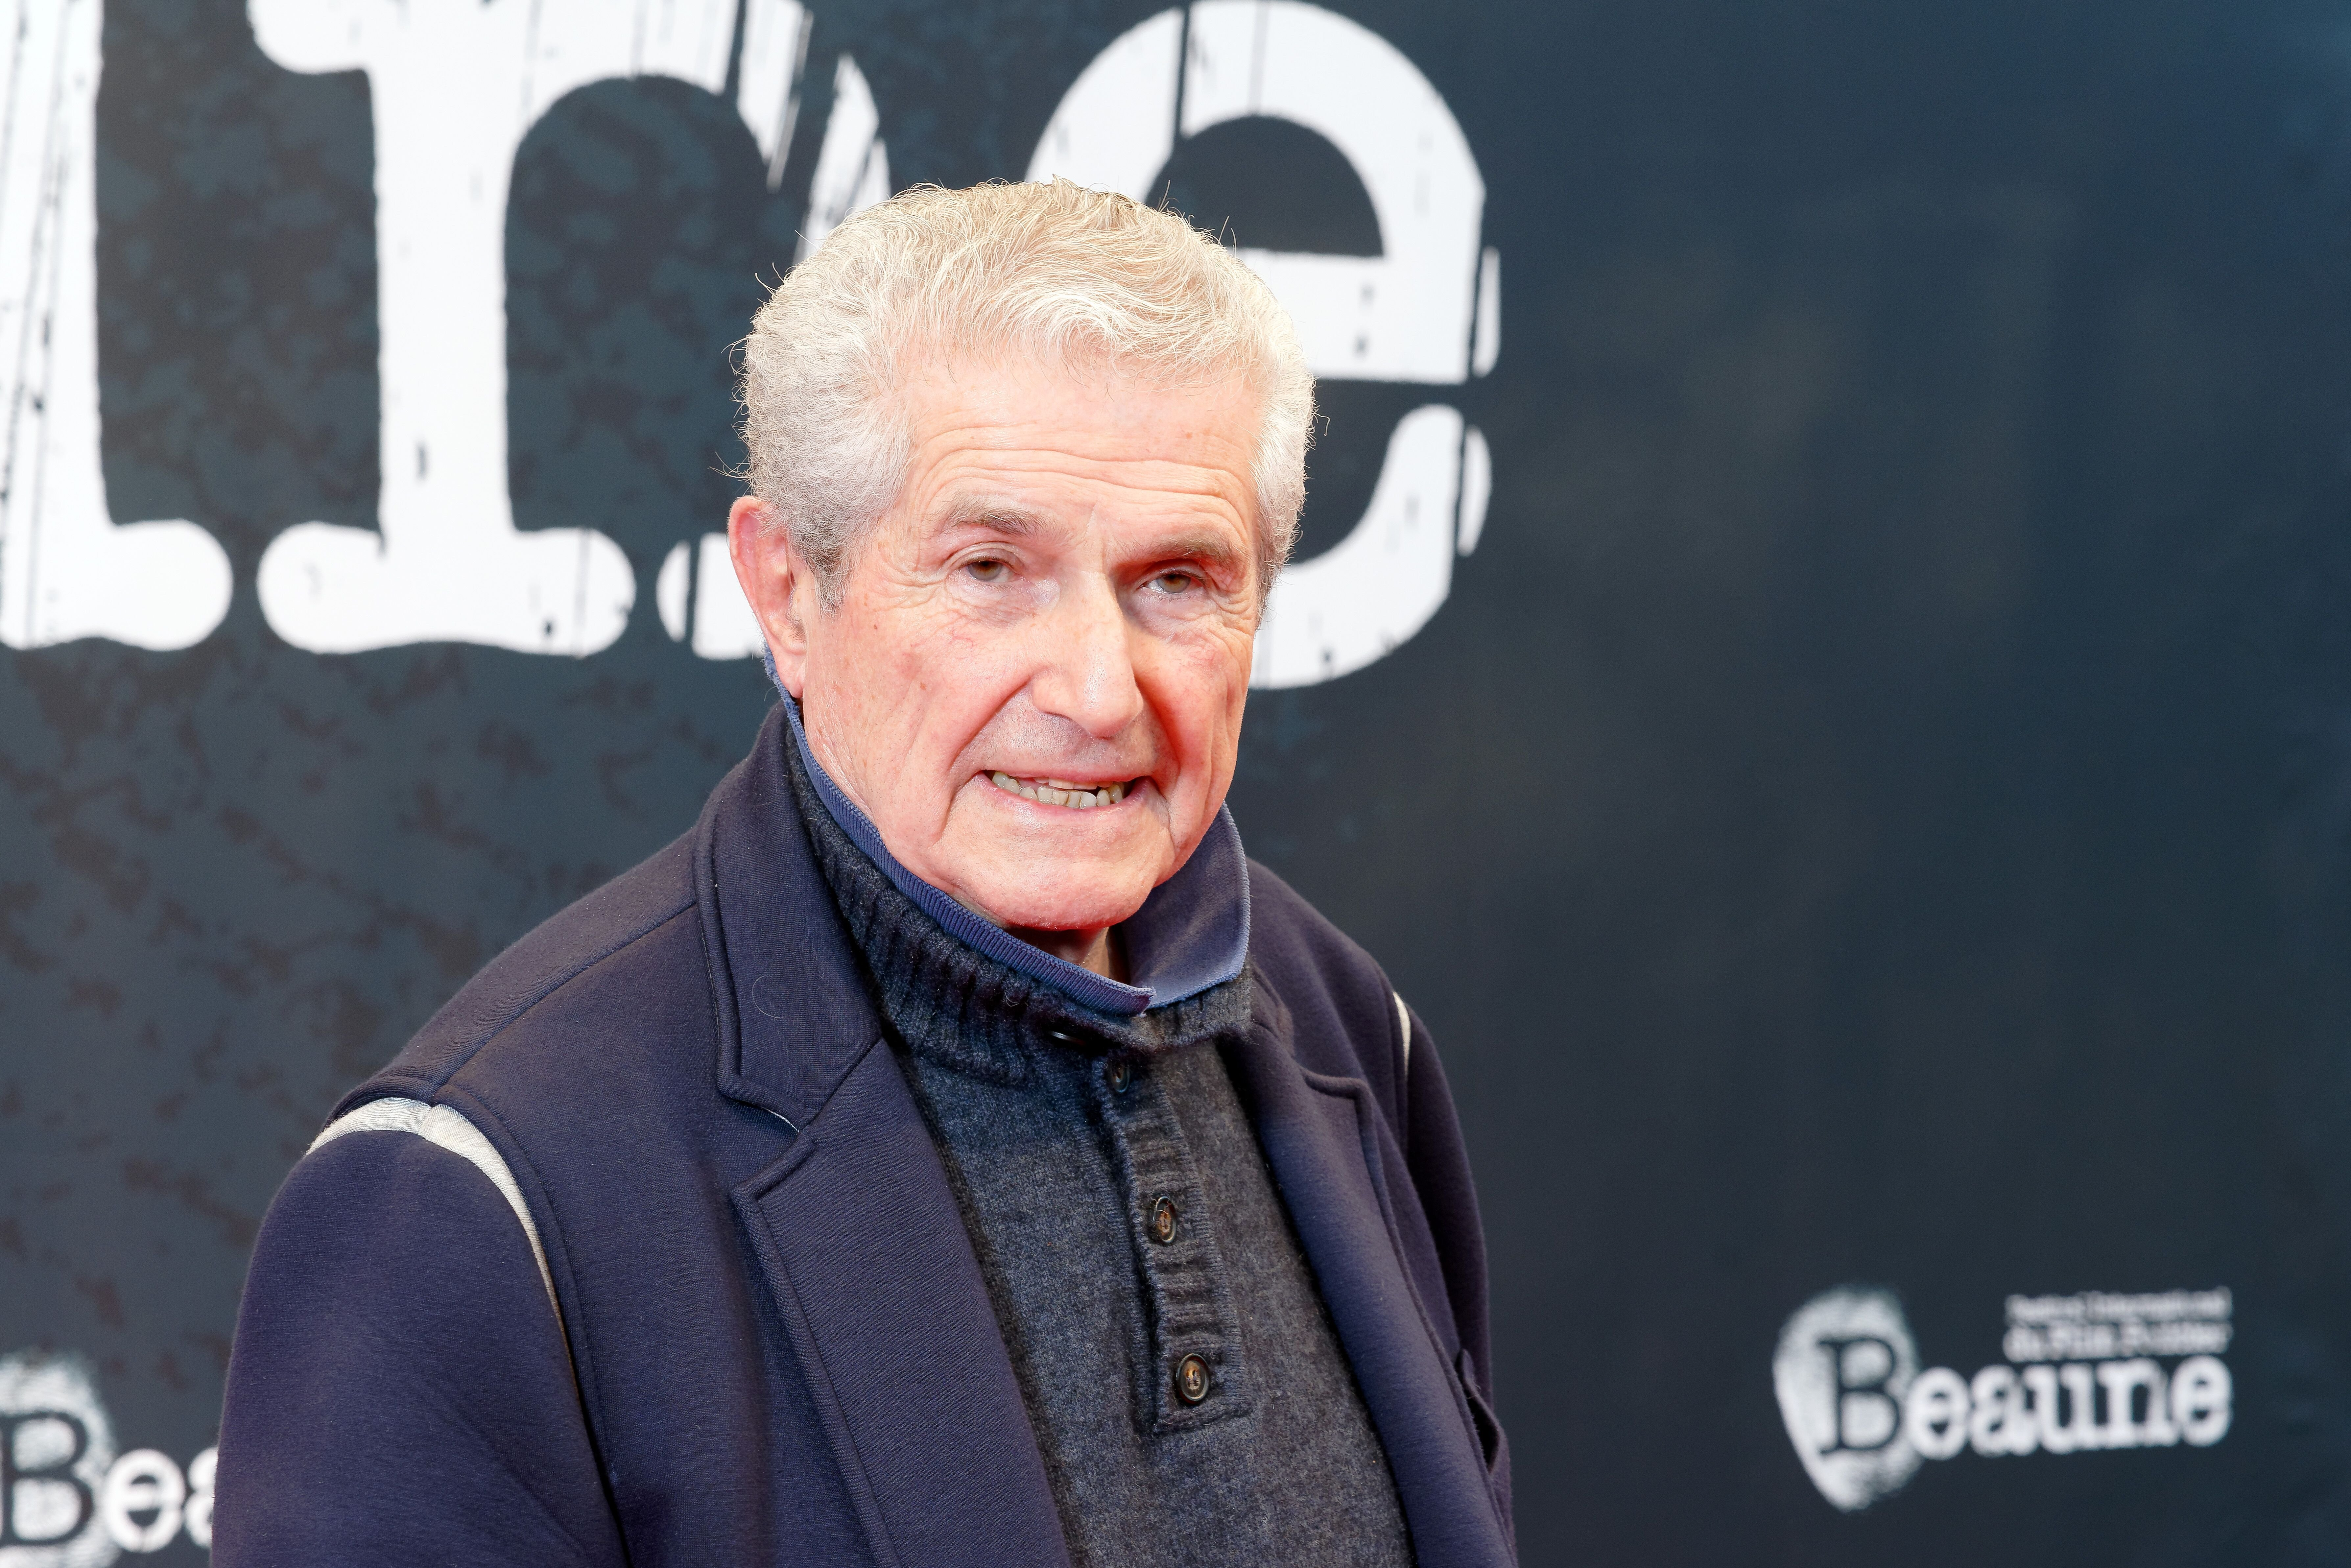 Claude Lelouch participe au 11ème Festival International du Film Thriller de Beaune à Beaune, France. | Photo : Getty Images